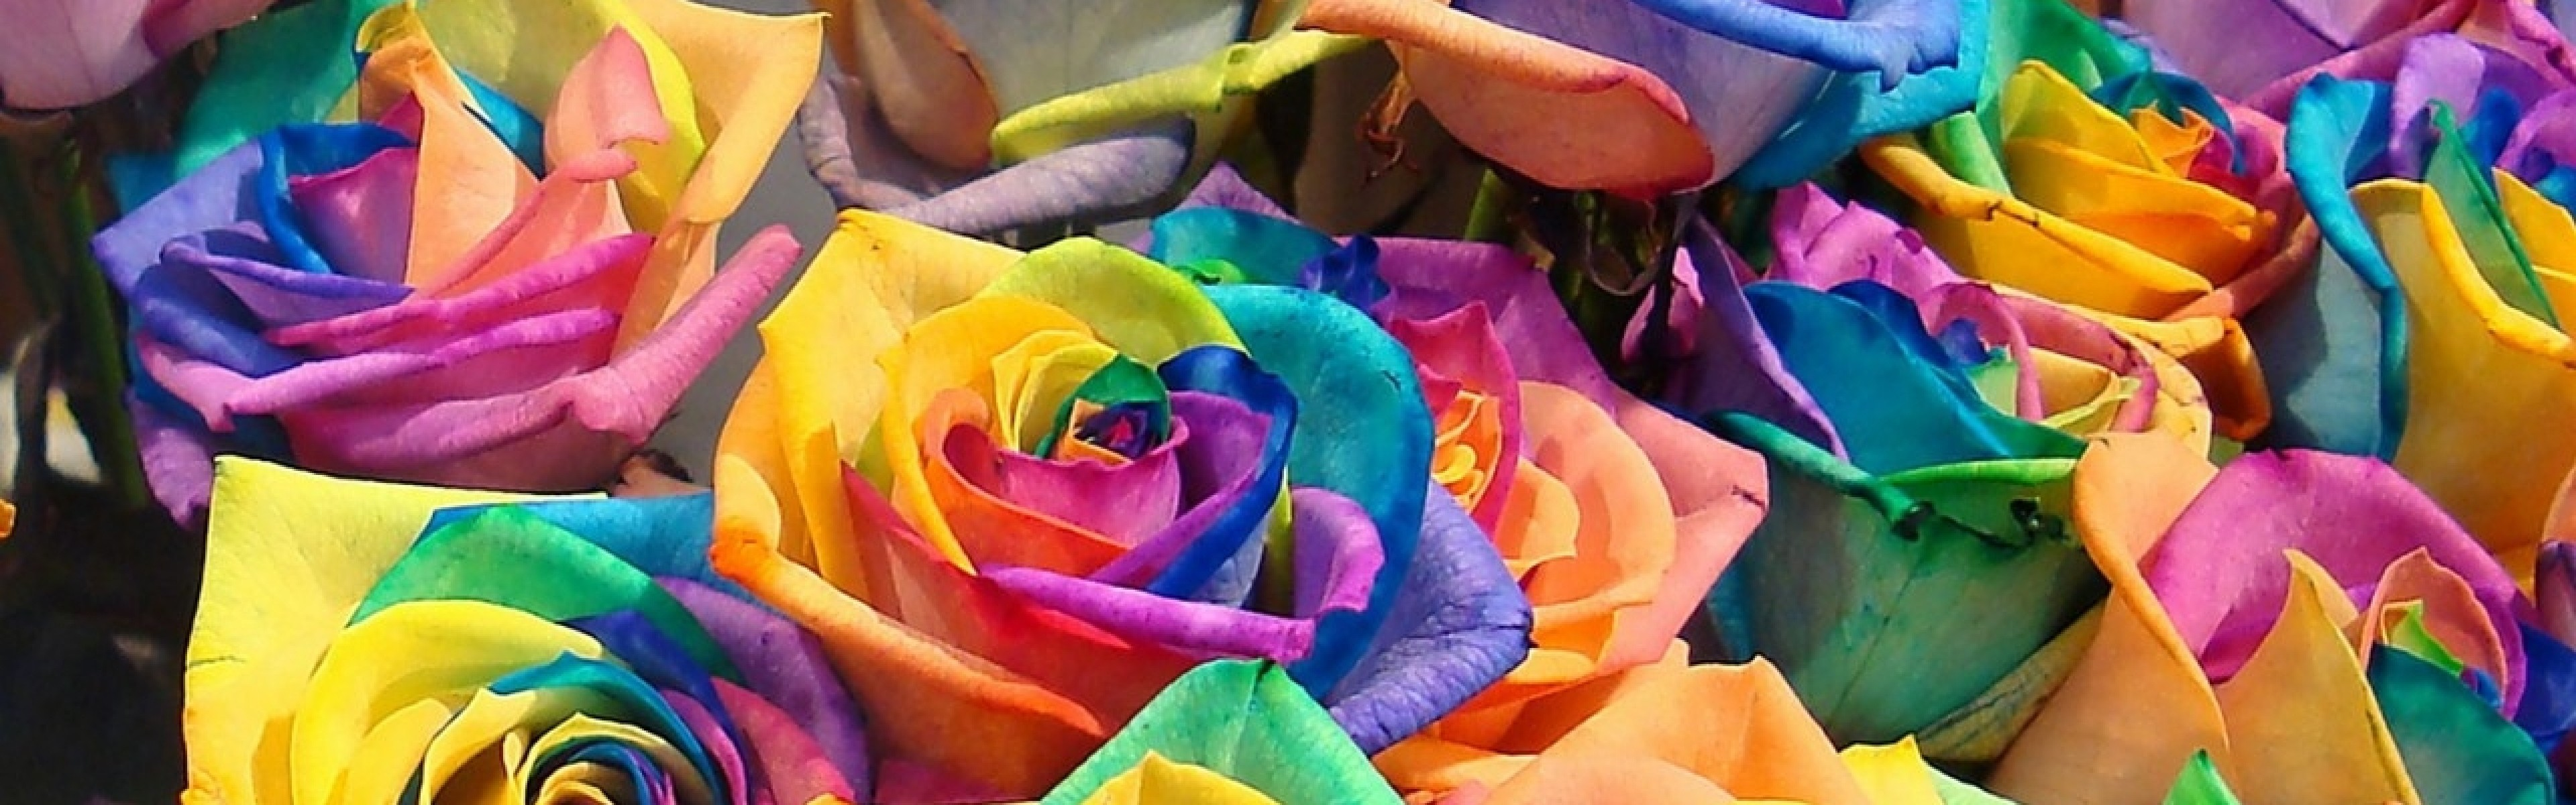 Wallpaper roses, flowers, colorful, buds, bright